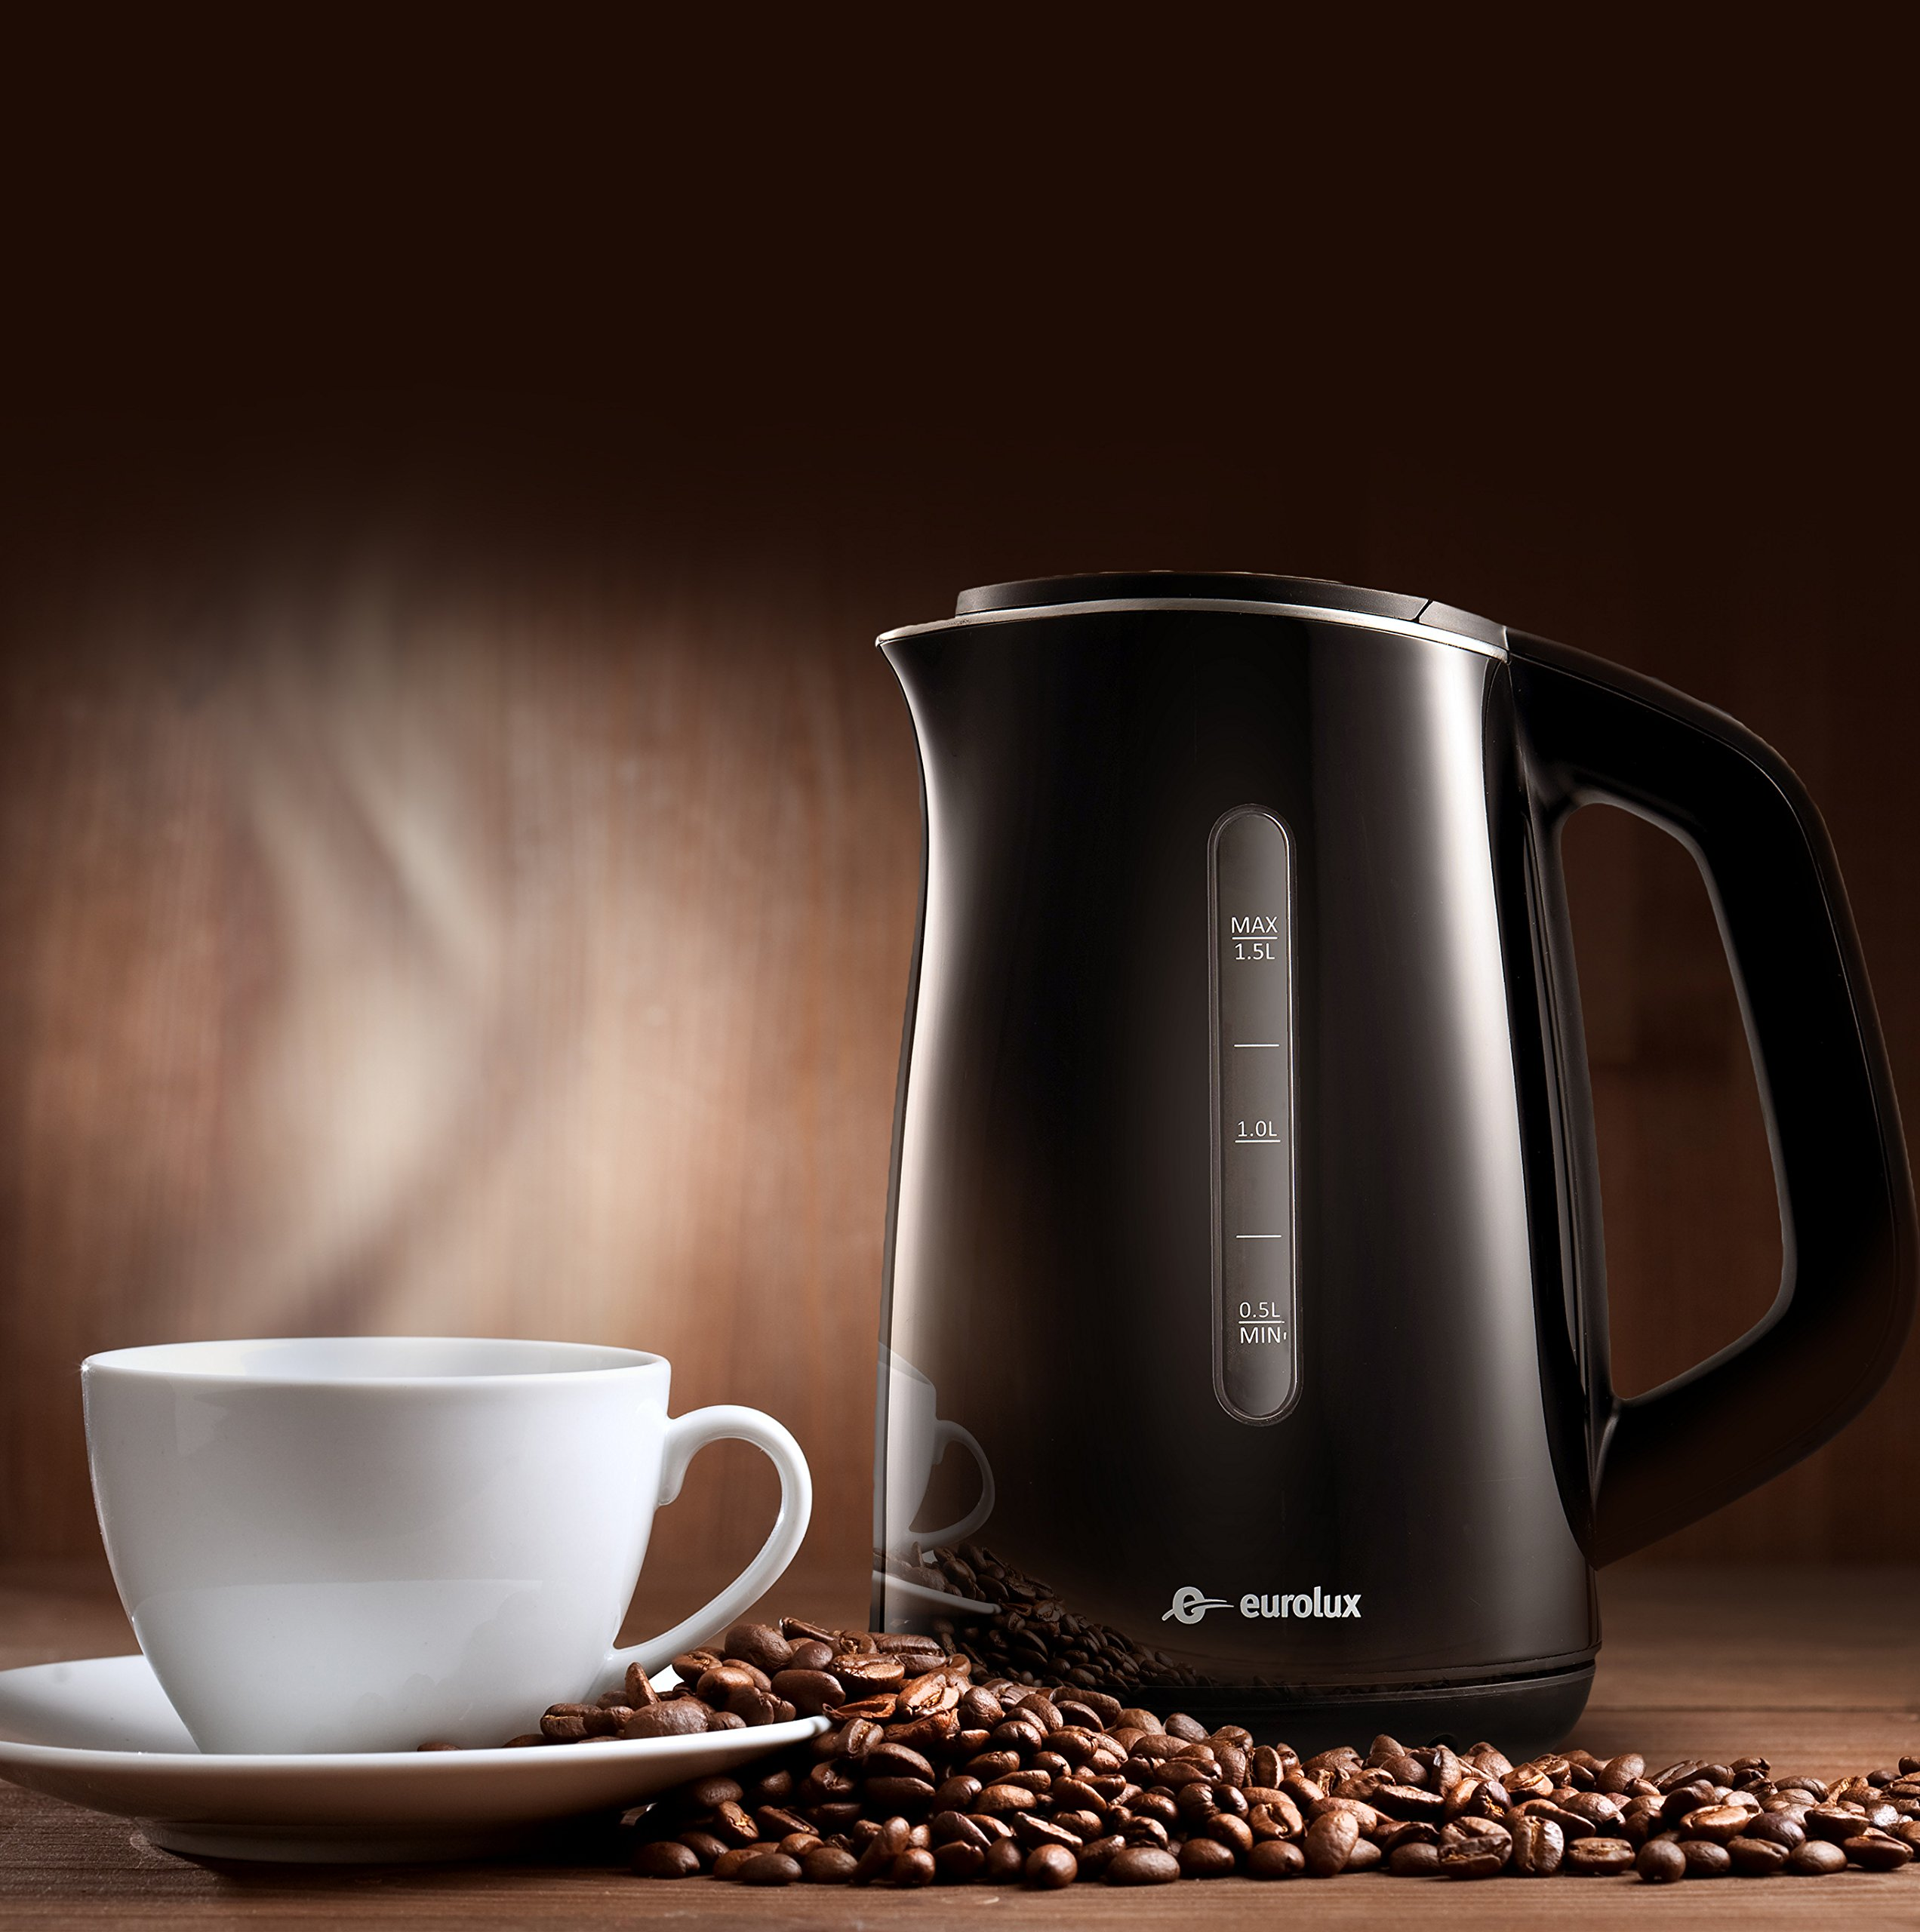 Product Image 4: HadinEEon Electric Kettle 1.7L Glass Electric Tea Kettle (BPA Free) Cordless Teapot, Portable Electric Hot Water Kettle with Auto Shutoff Protection, Stainless Steel Lid & Bottom